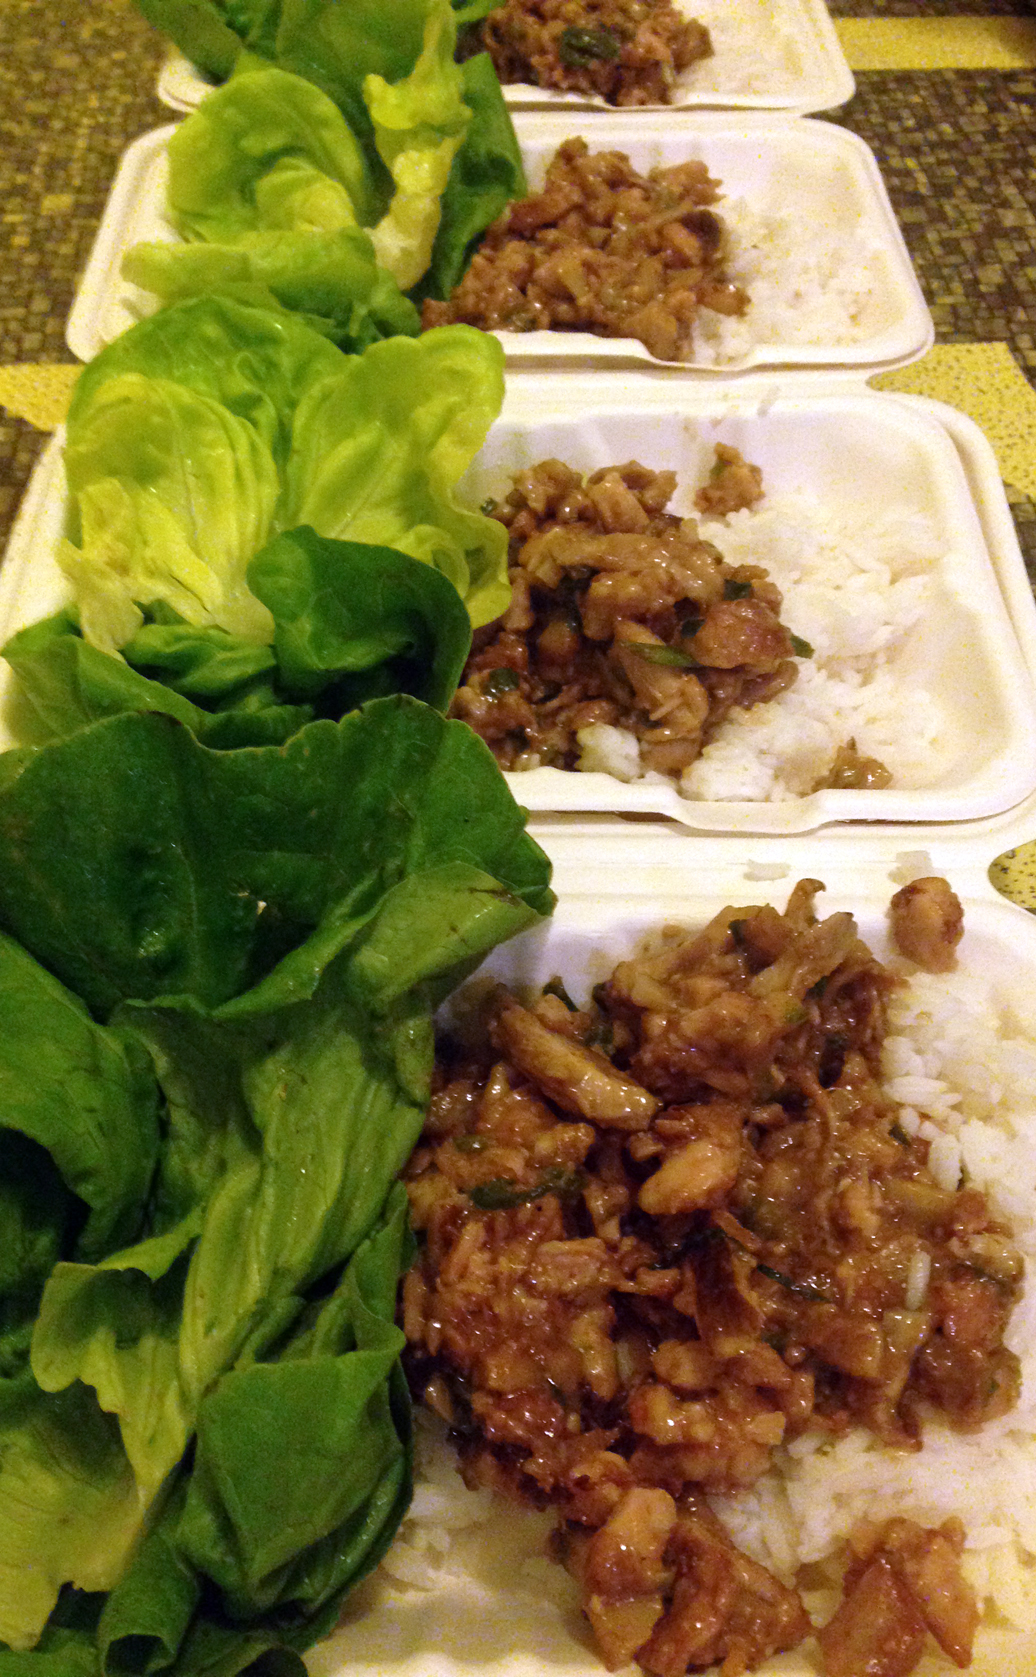 PF Changs-ish lettuce wraps with chicken and mushrooms.